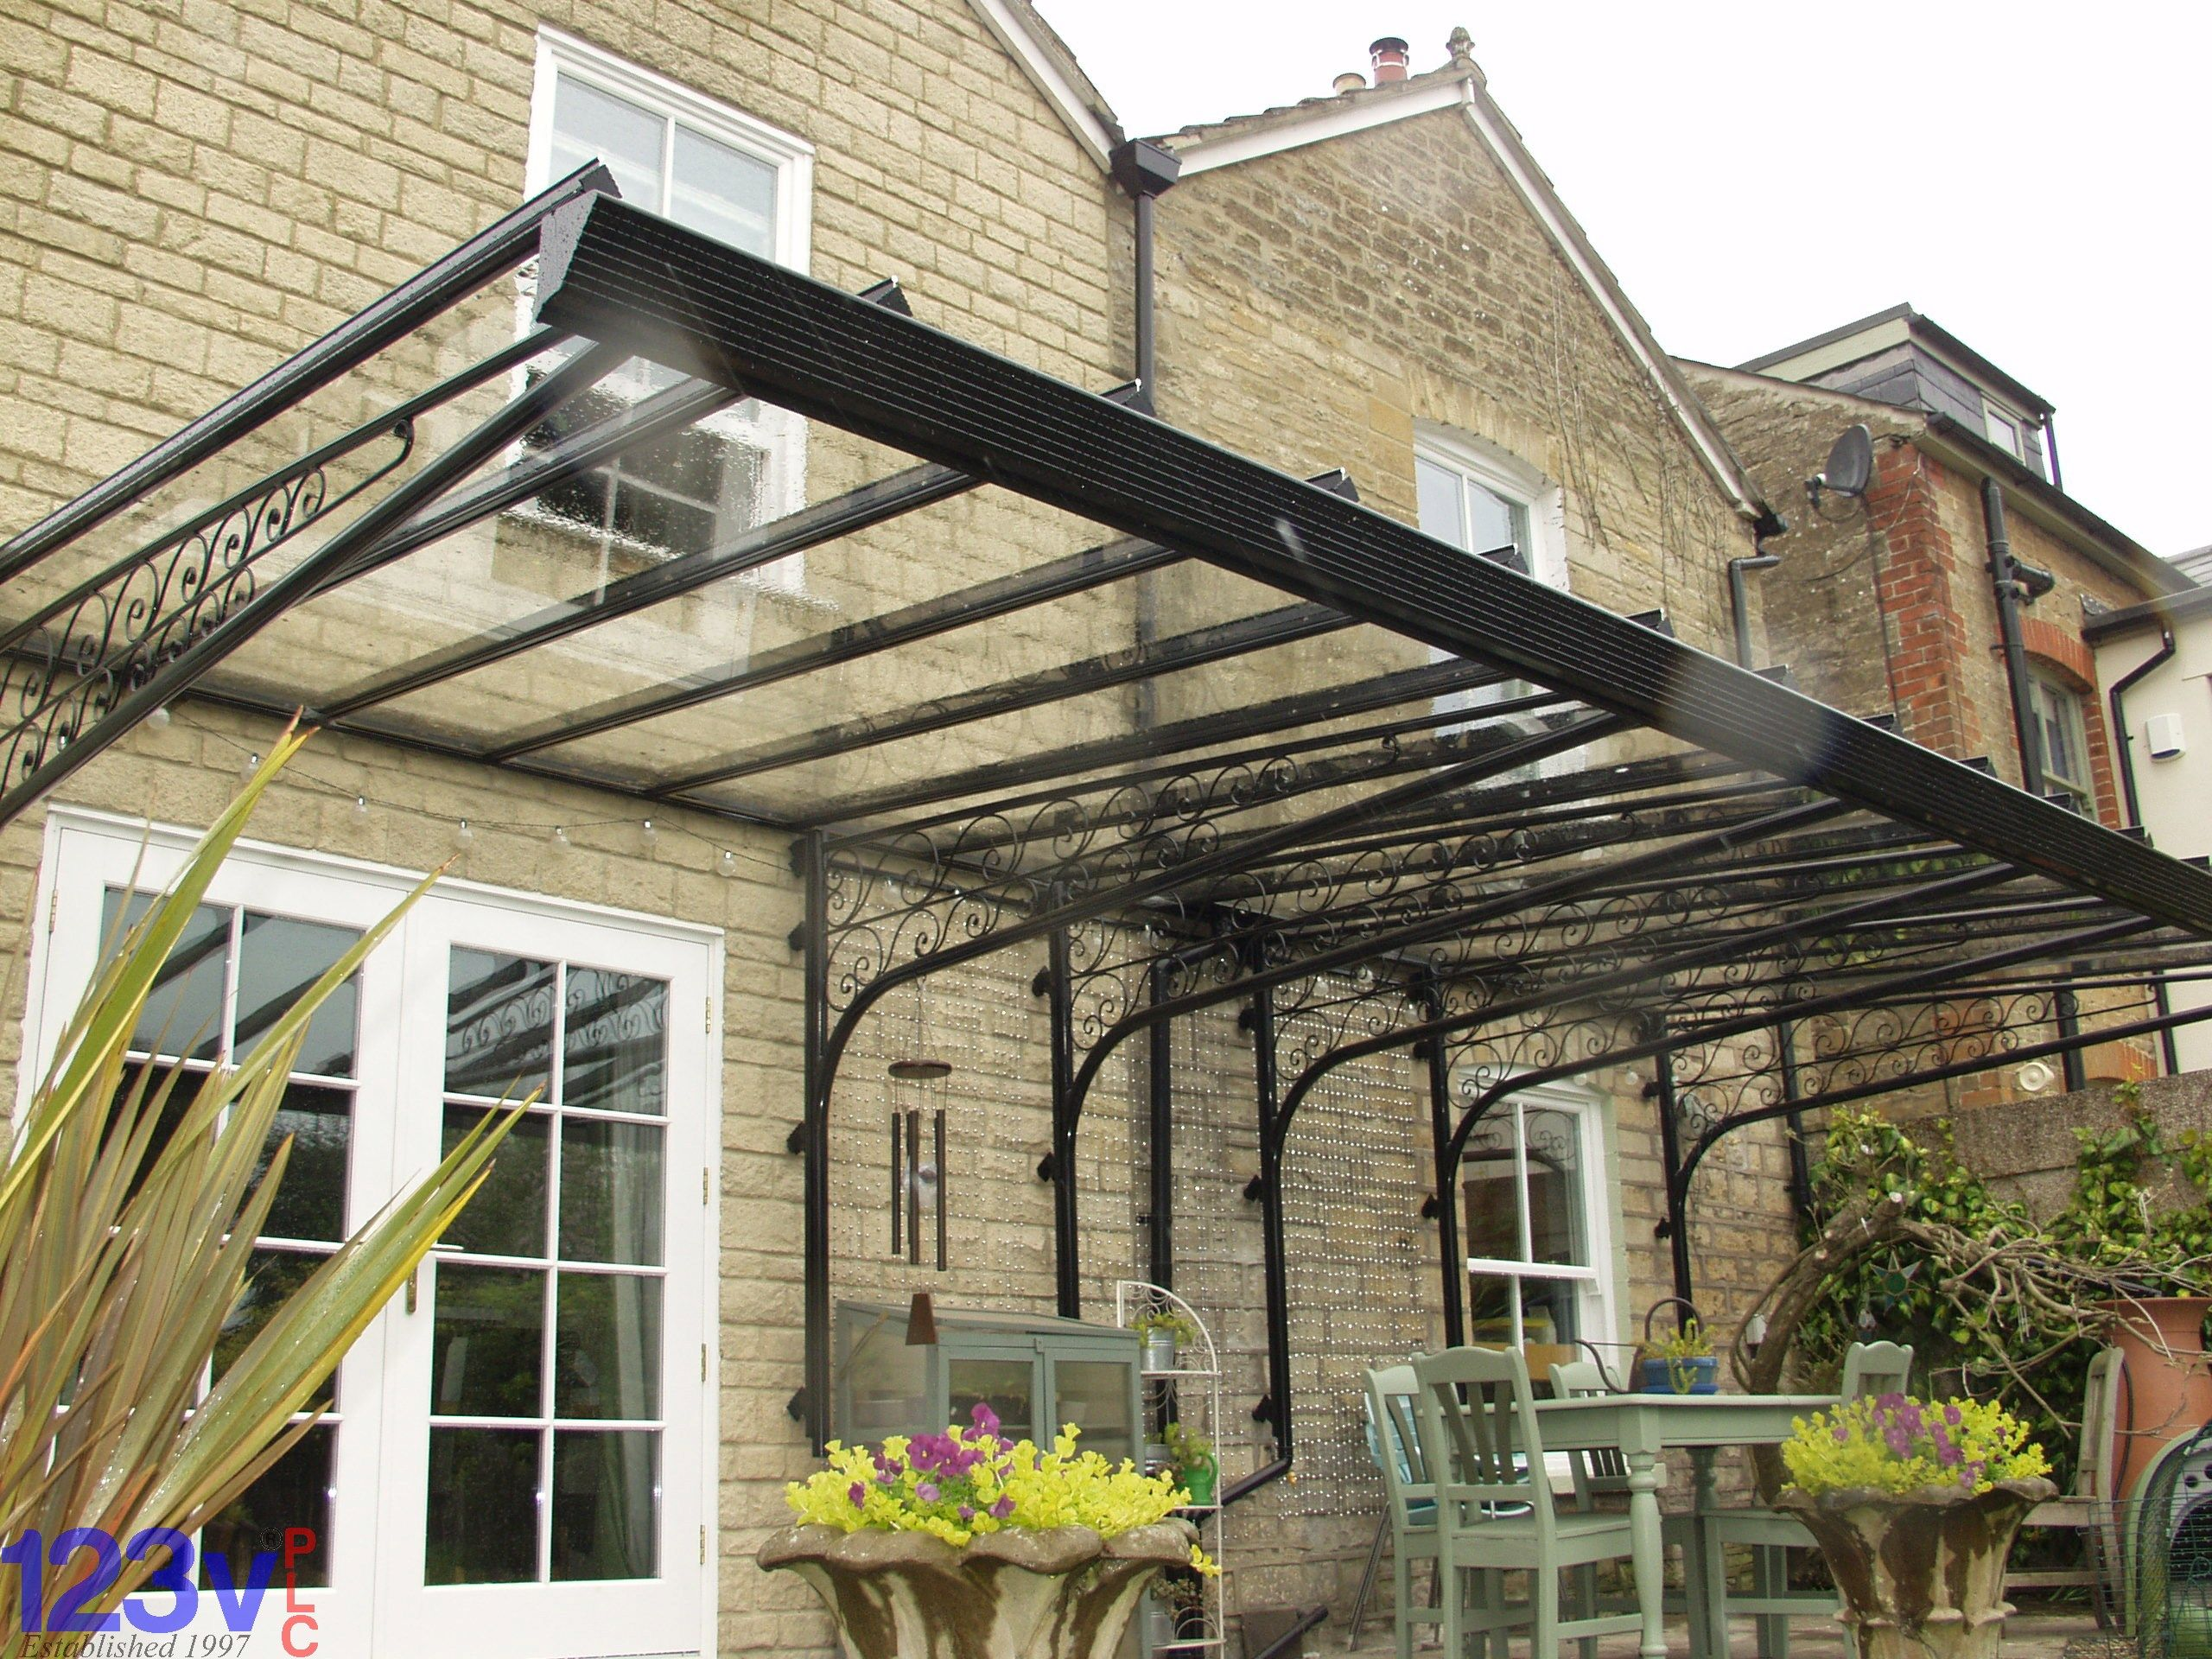 Soak Up The Sun Beneath A Luxury Glass Canopy This Summer!